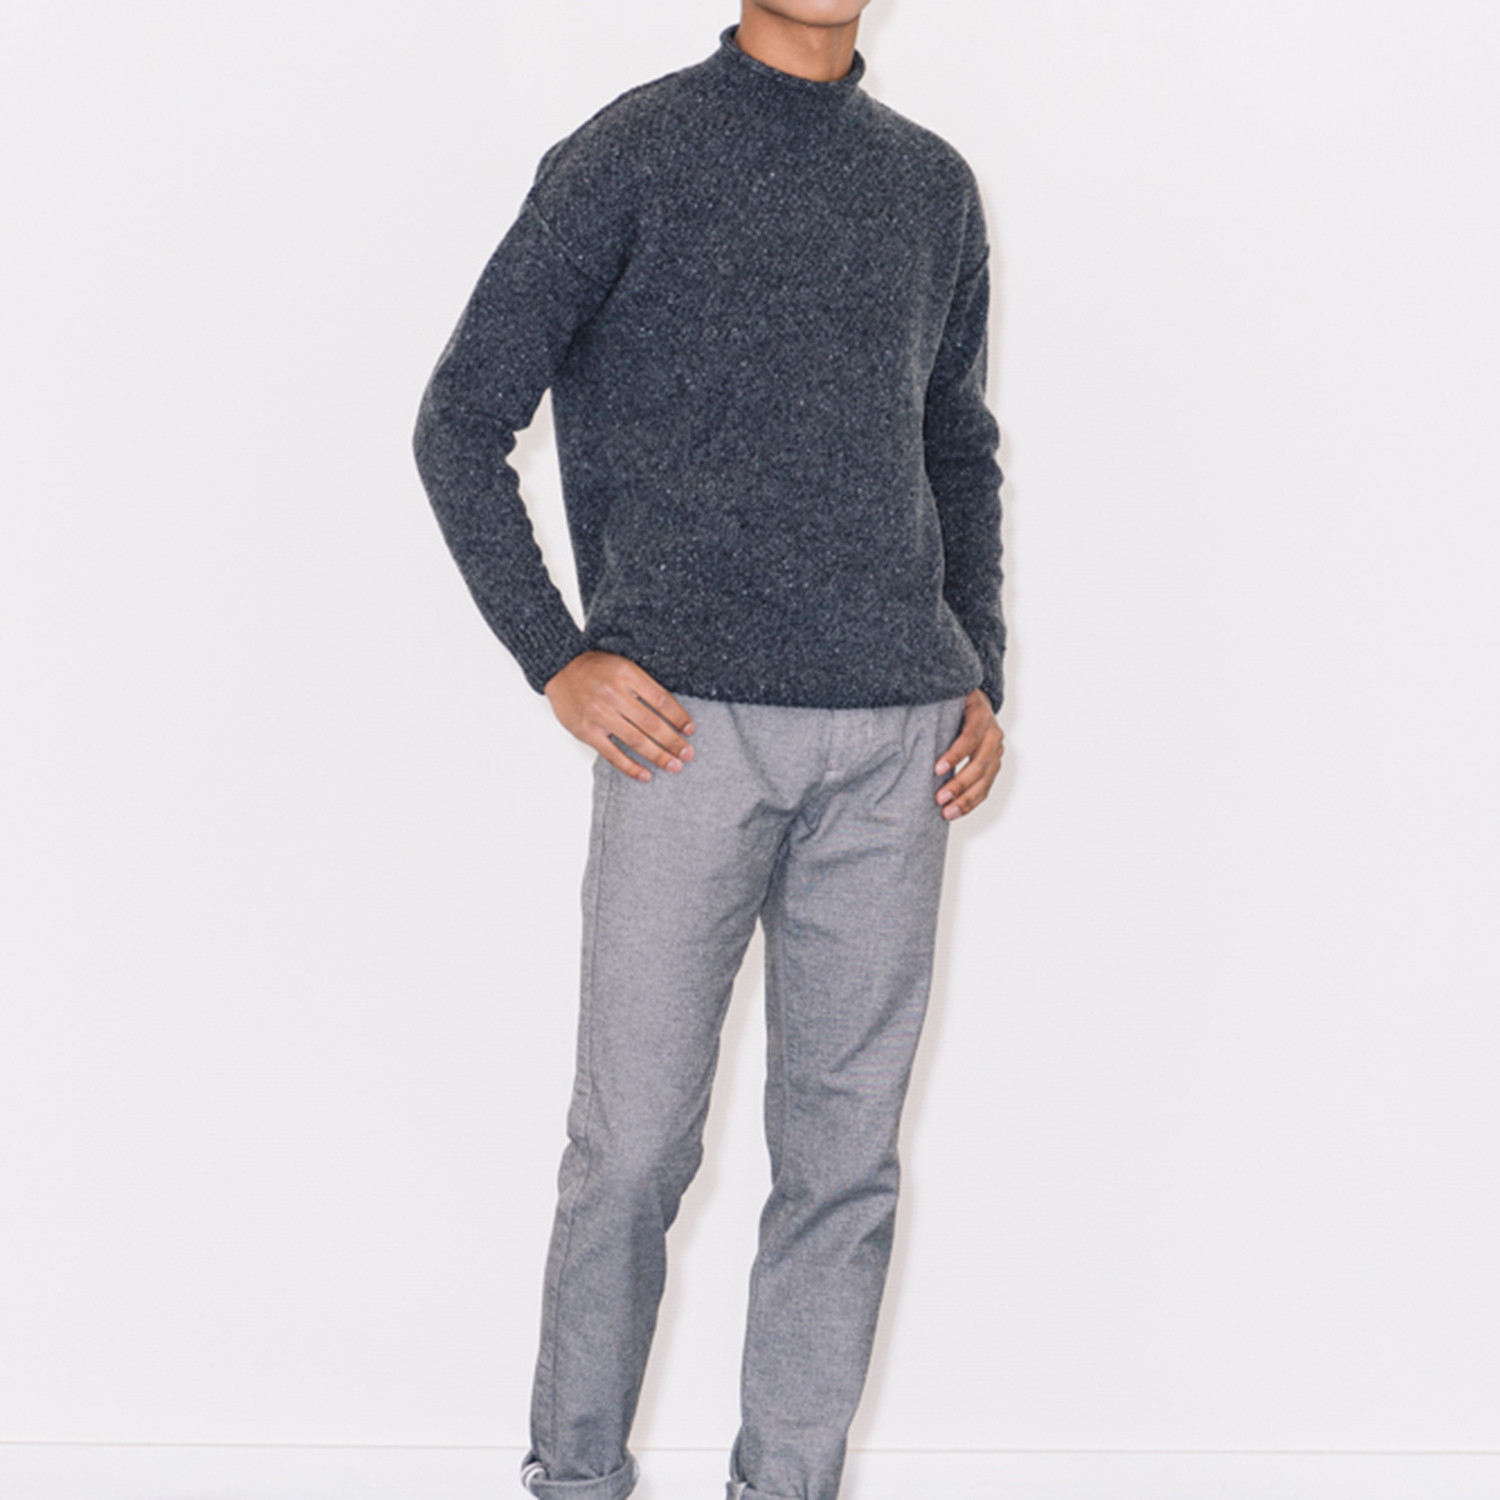 Knitted Sweater Shadow Grey S Six Edges Touch Of